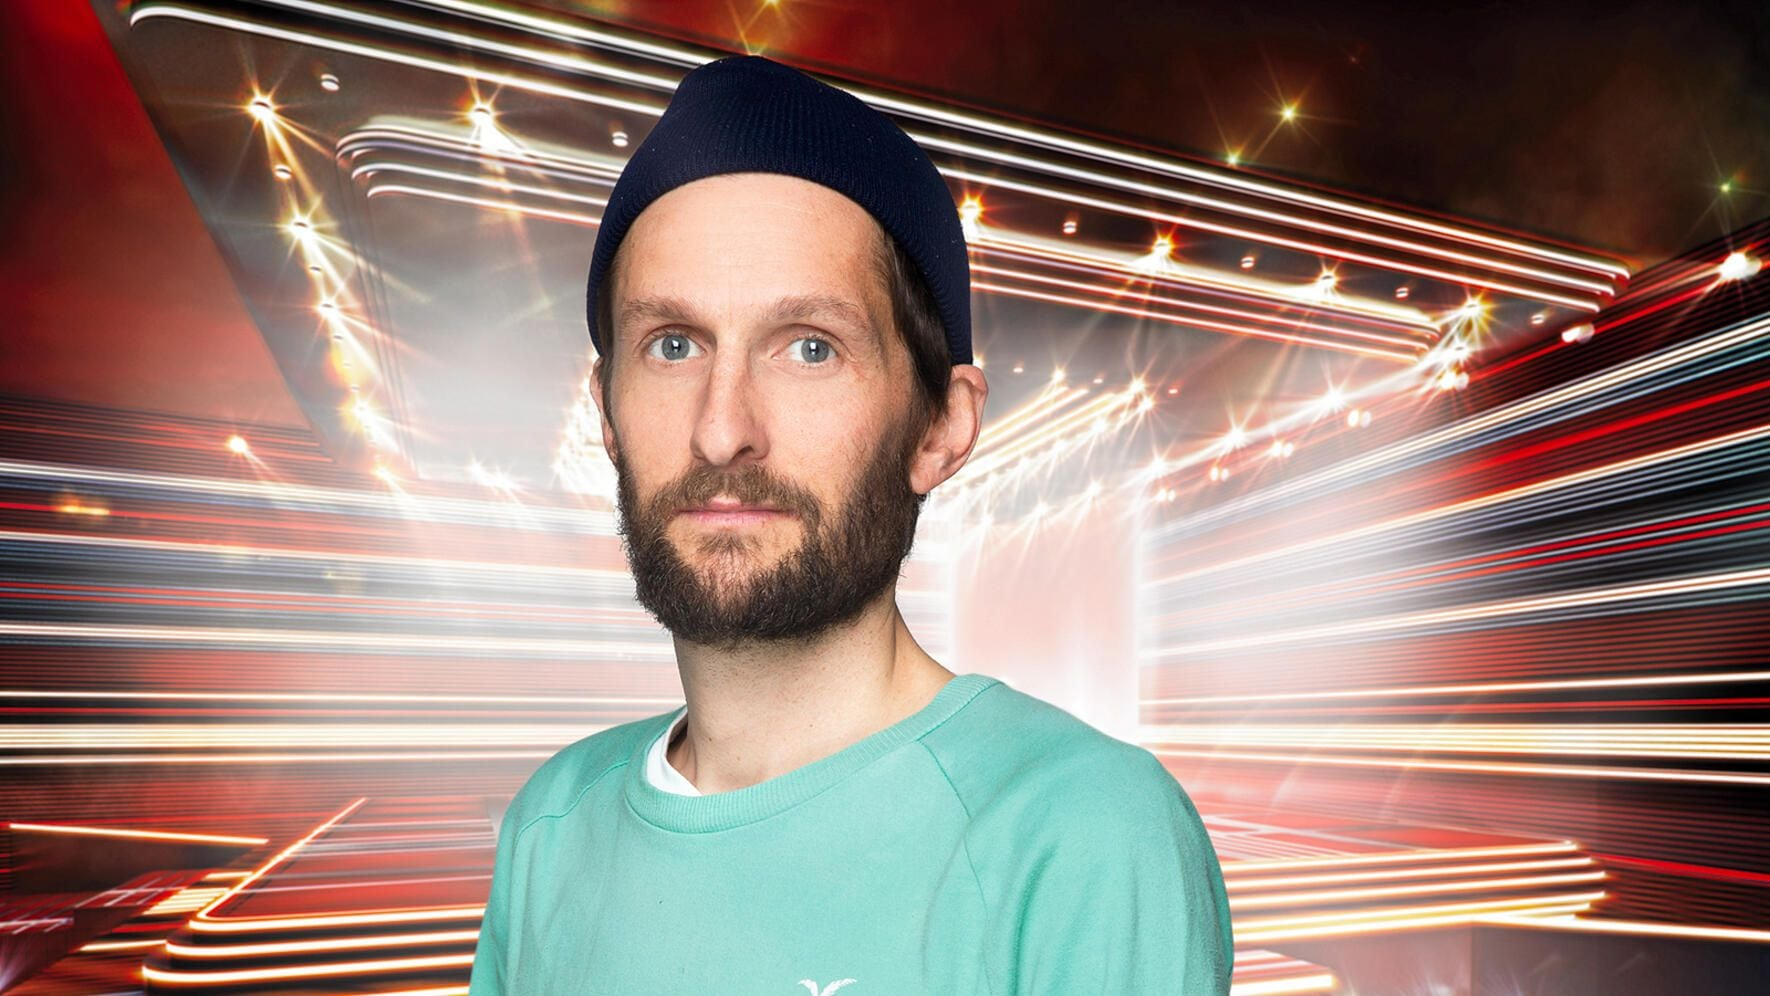 The Voice of Switzerland 2014, Staffel 2, Kandidat Shem Thomas